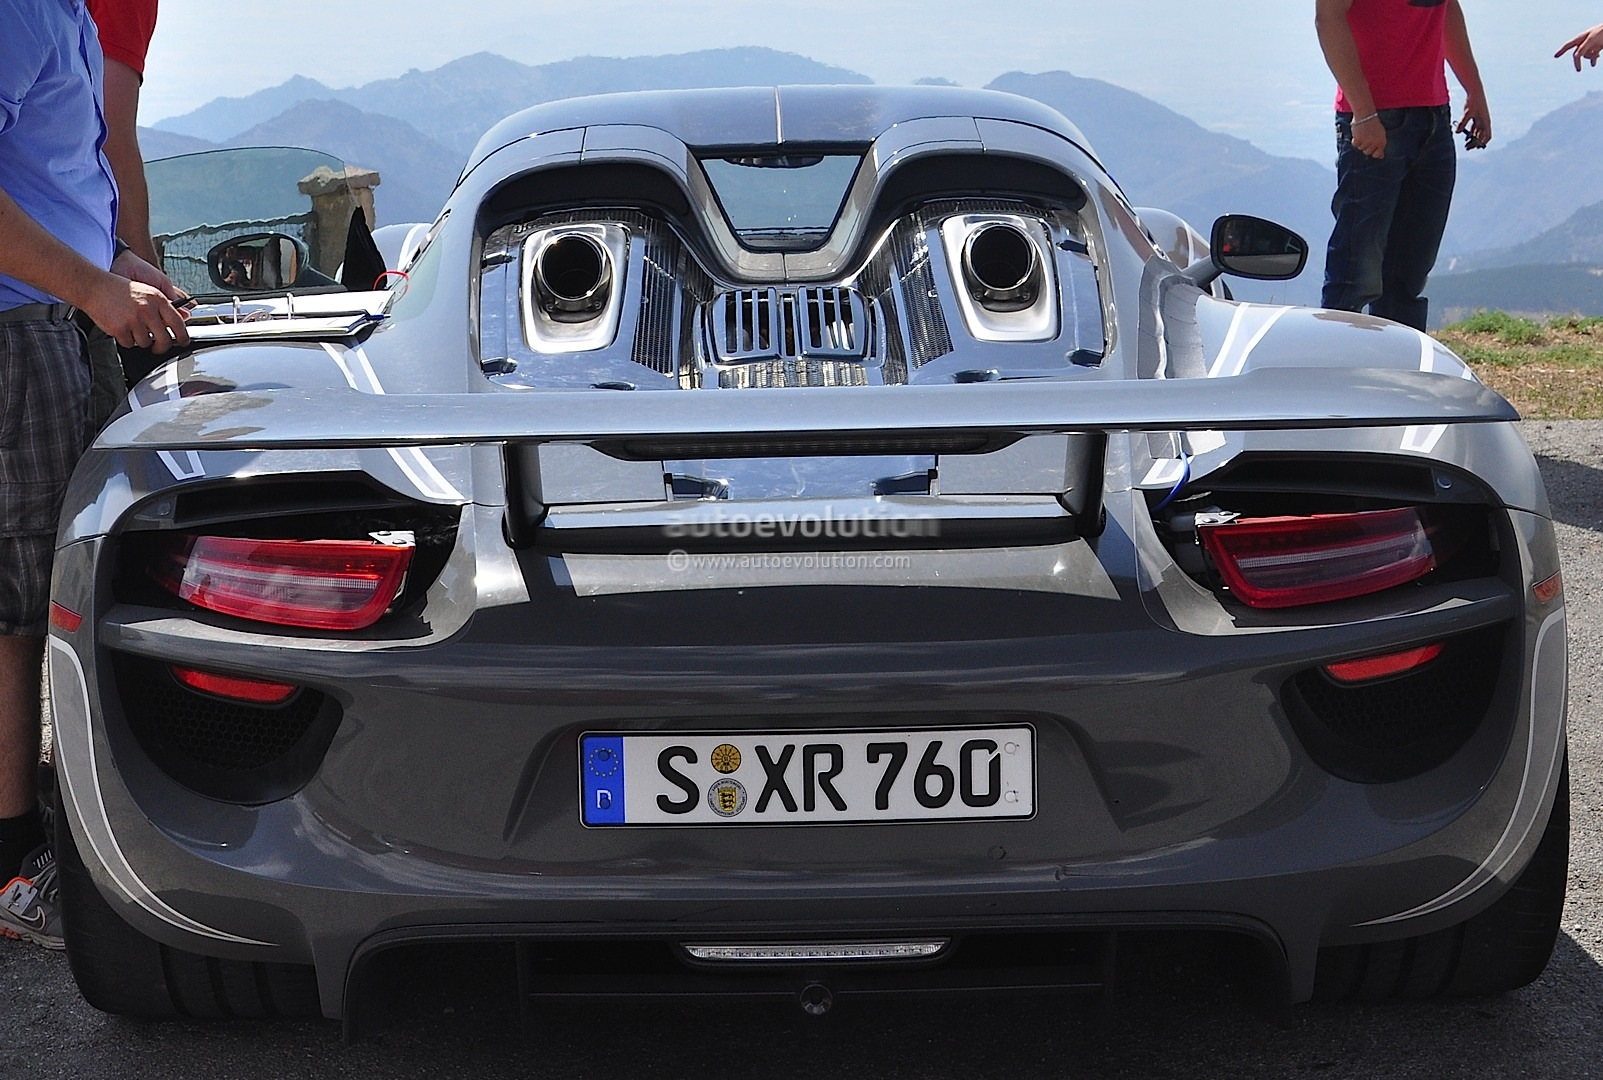 Porsche 918 Spyder Interior Revealed In Latest Spyshots